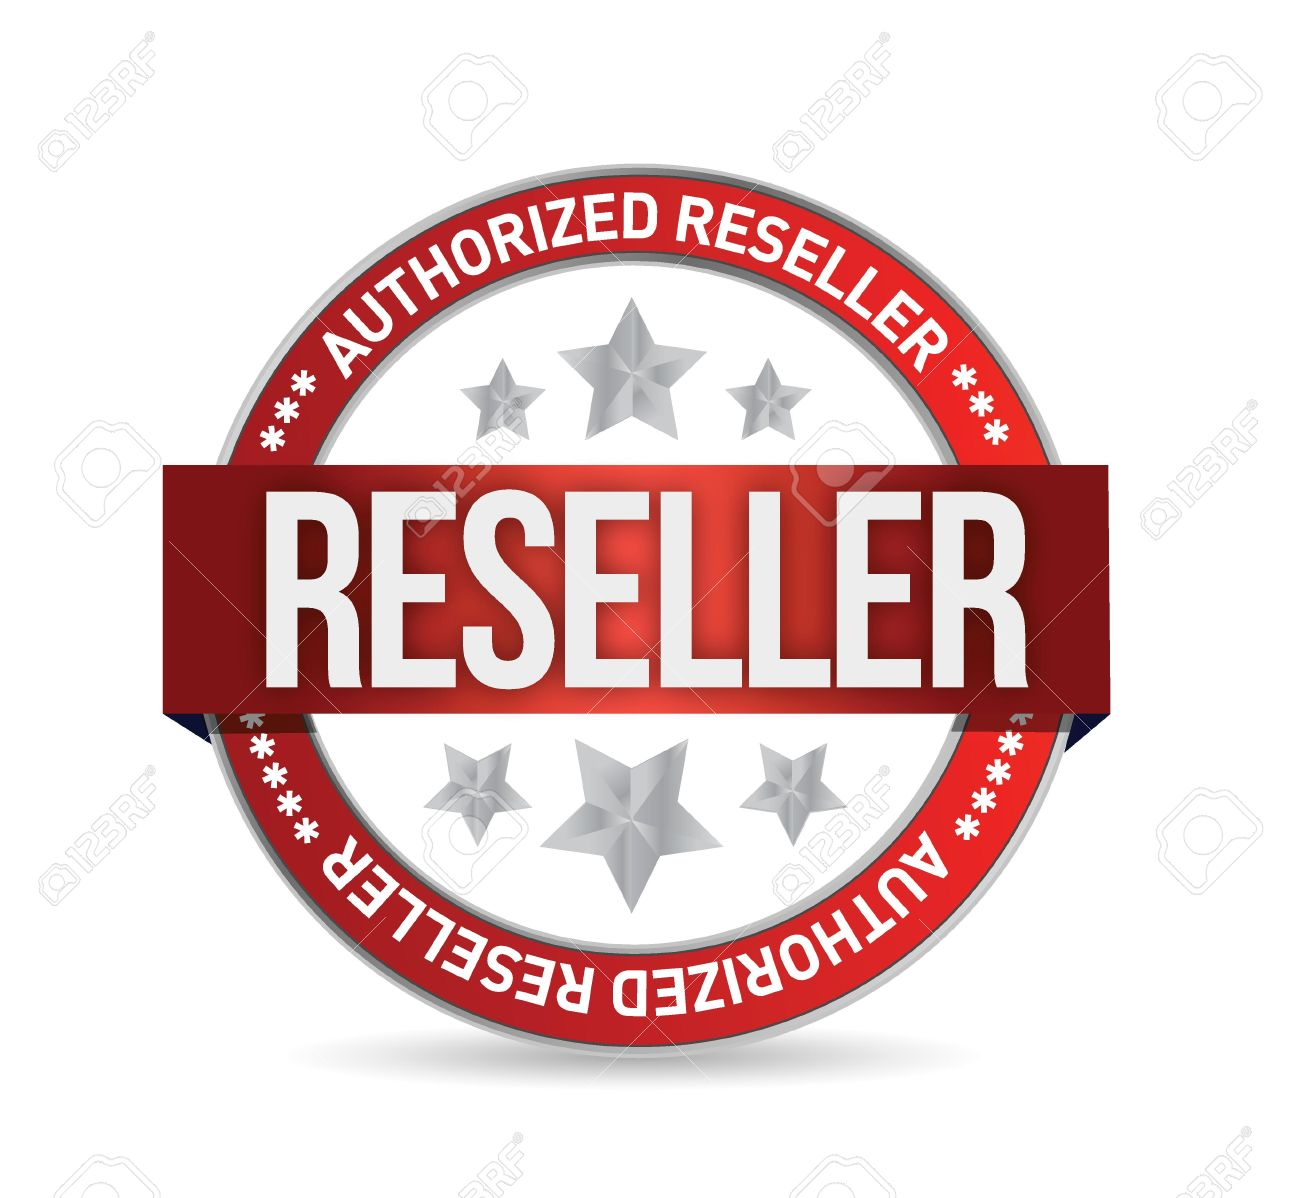 Resellers clipart.